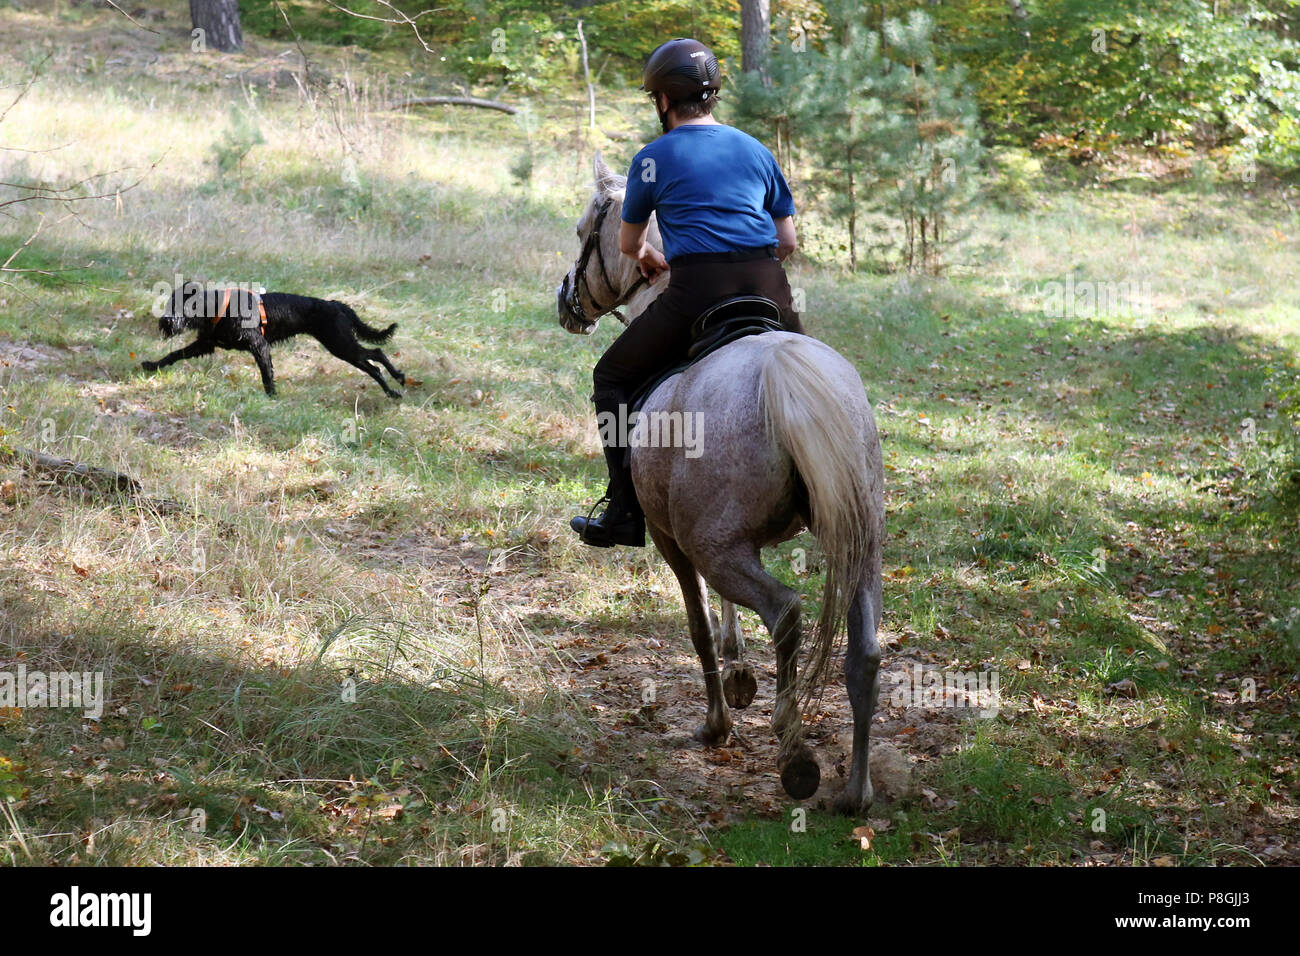 Zernikow, wife meets a free-running dog during a ride in the woods - Stock Image